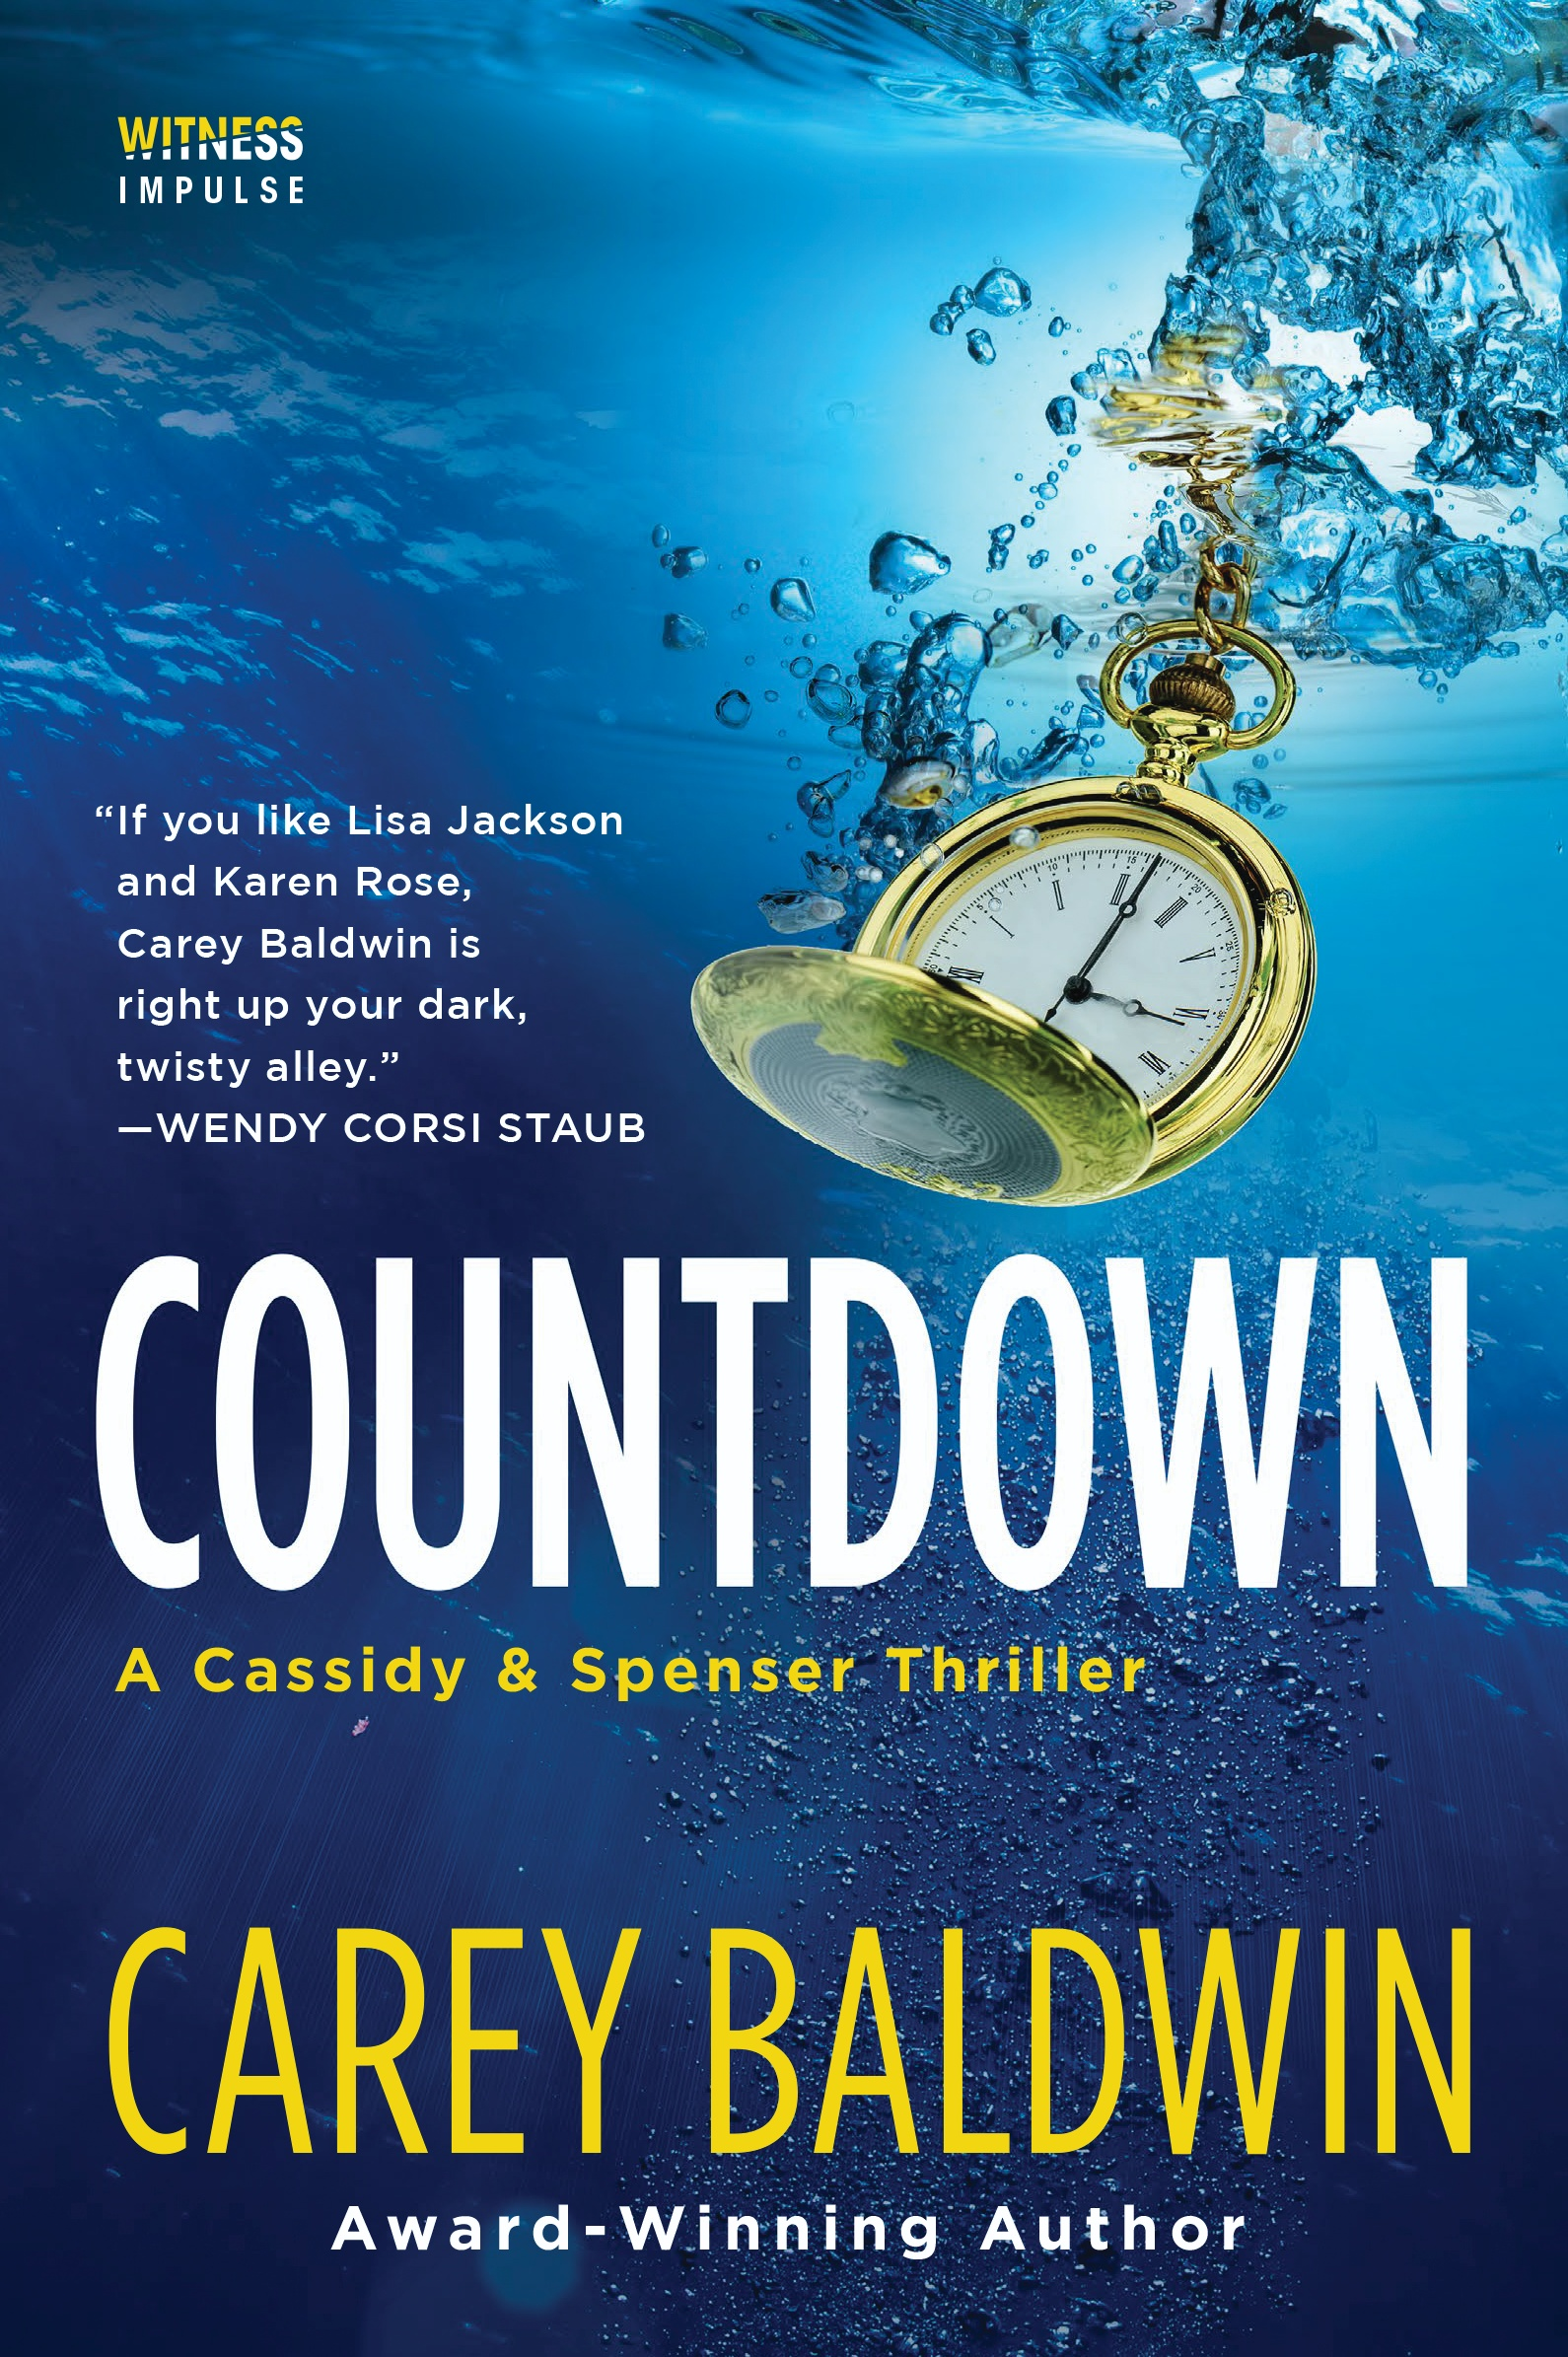 Countdown by Carey Baldwin